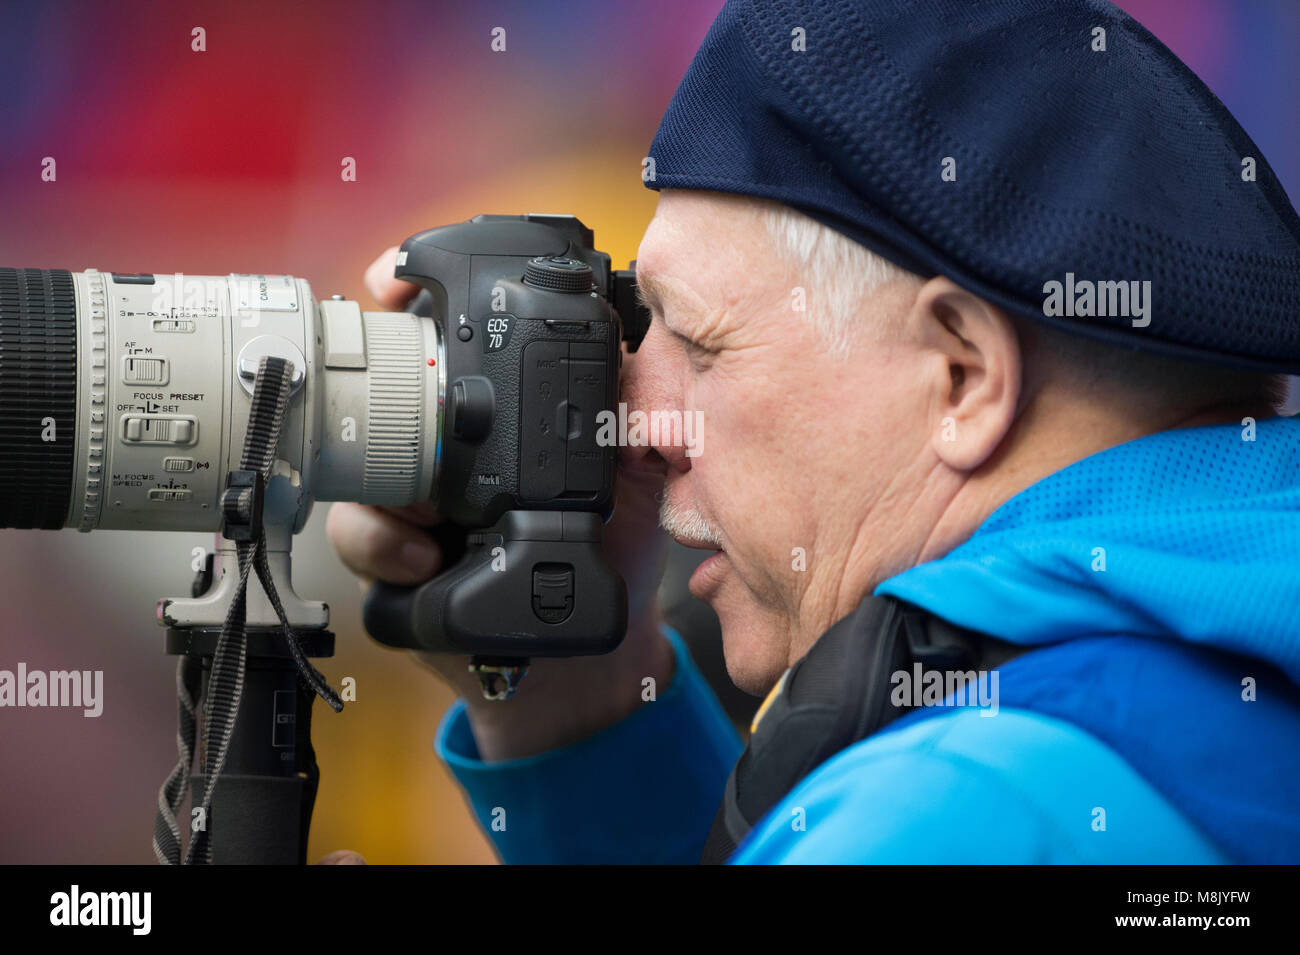 Professional Photographer looking through the viewfinder of his camera. - Stock Image